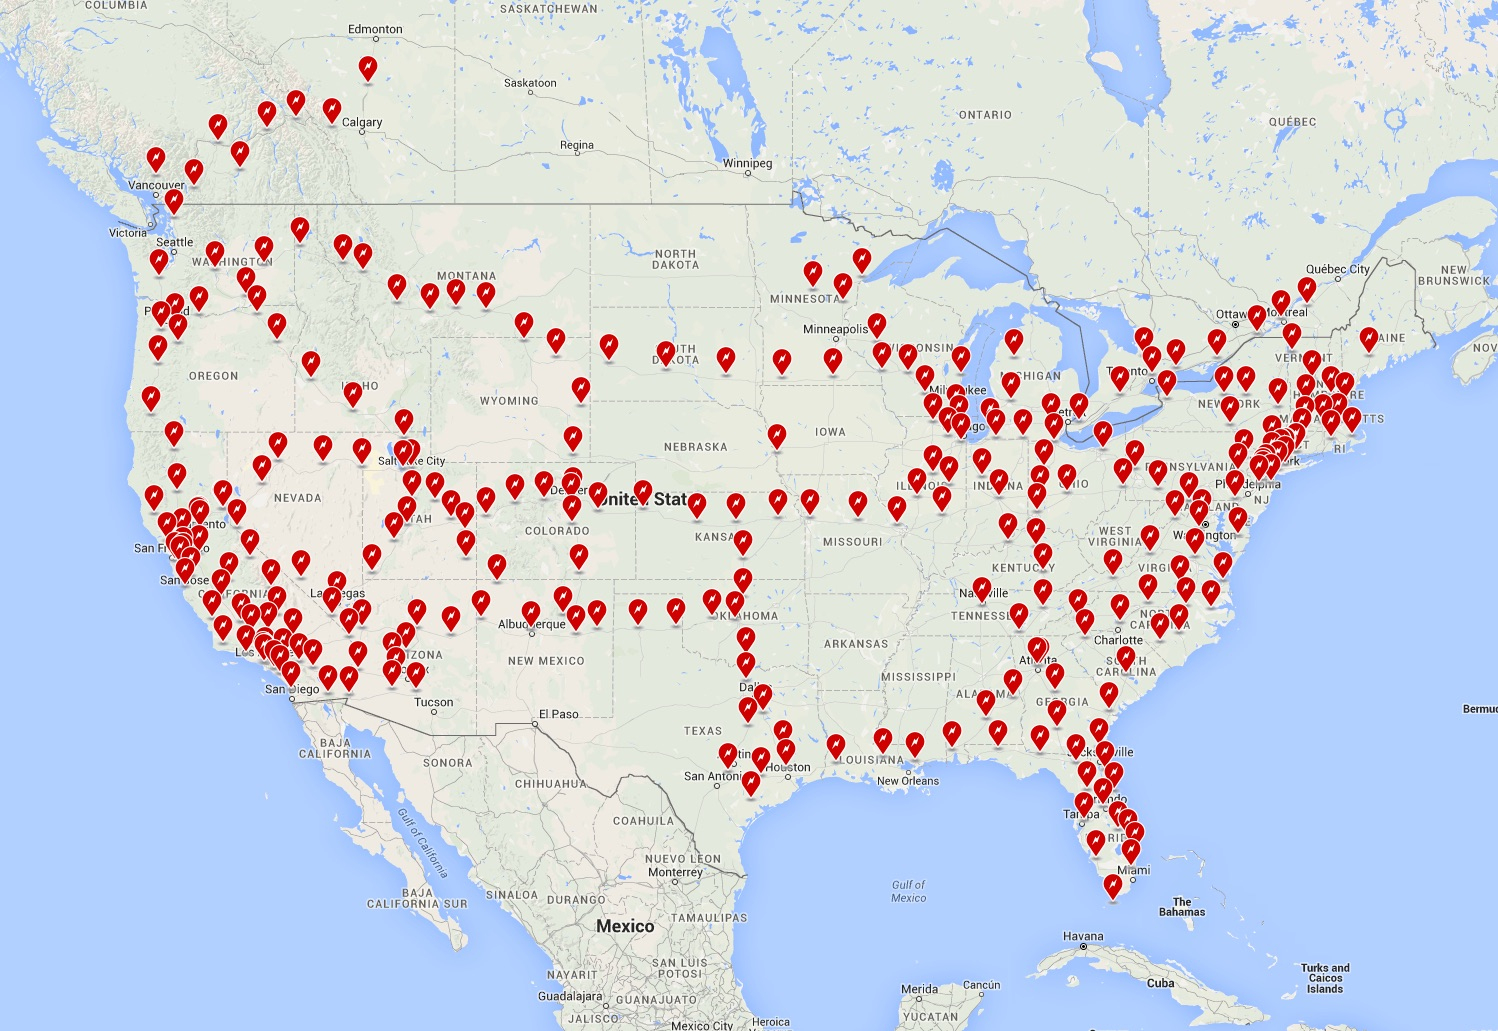 Tesla Teams With Ruby Tuesday For Supercharger Installs - Tesla Charging Stations Map California